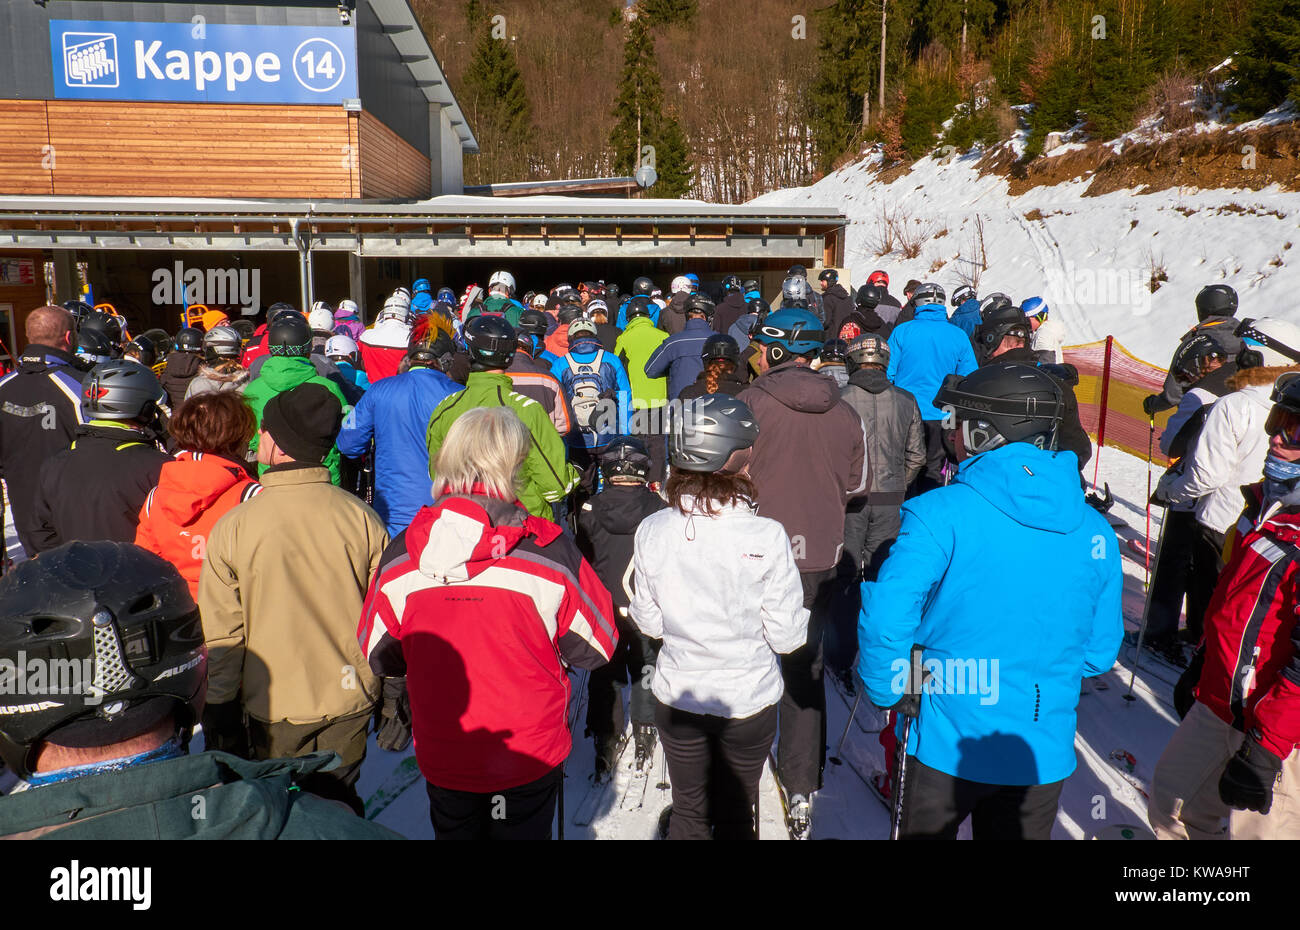 WINTERBERG, GERMANY - FEBRUARY 14, 2017: Skiers standing waiting in line to get to a chairlift for getting to the - Stock Image